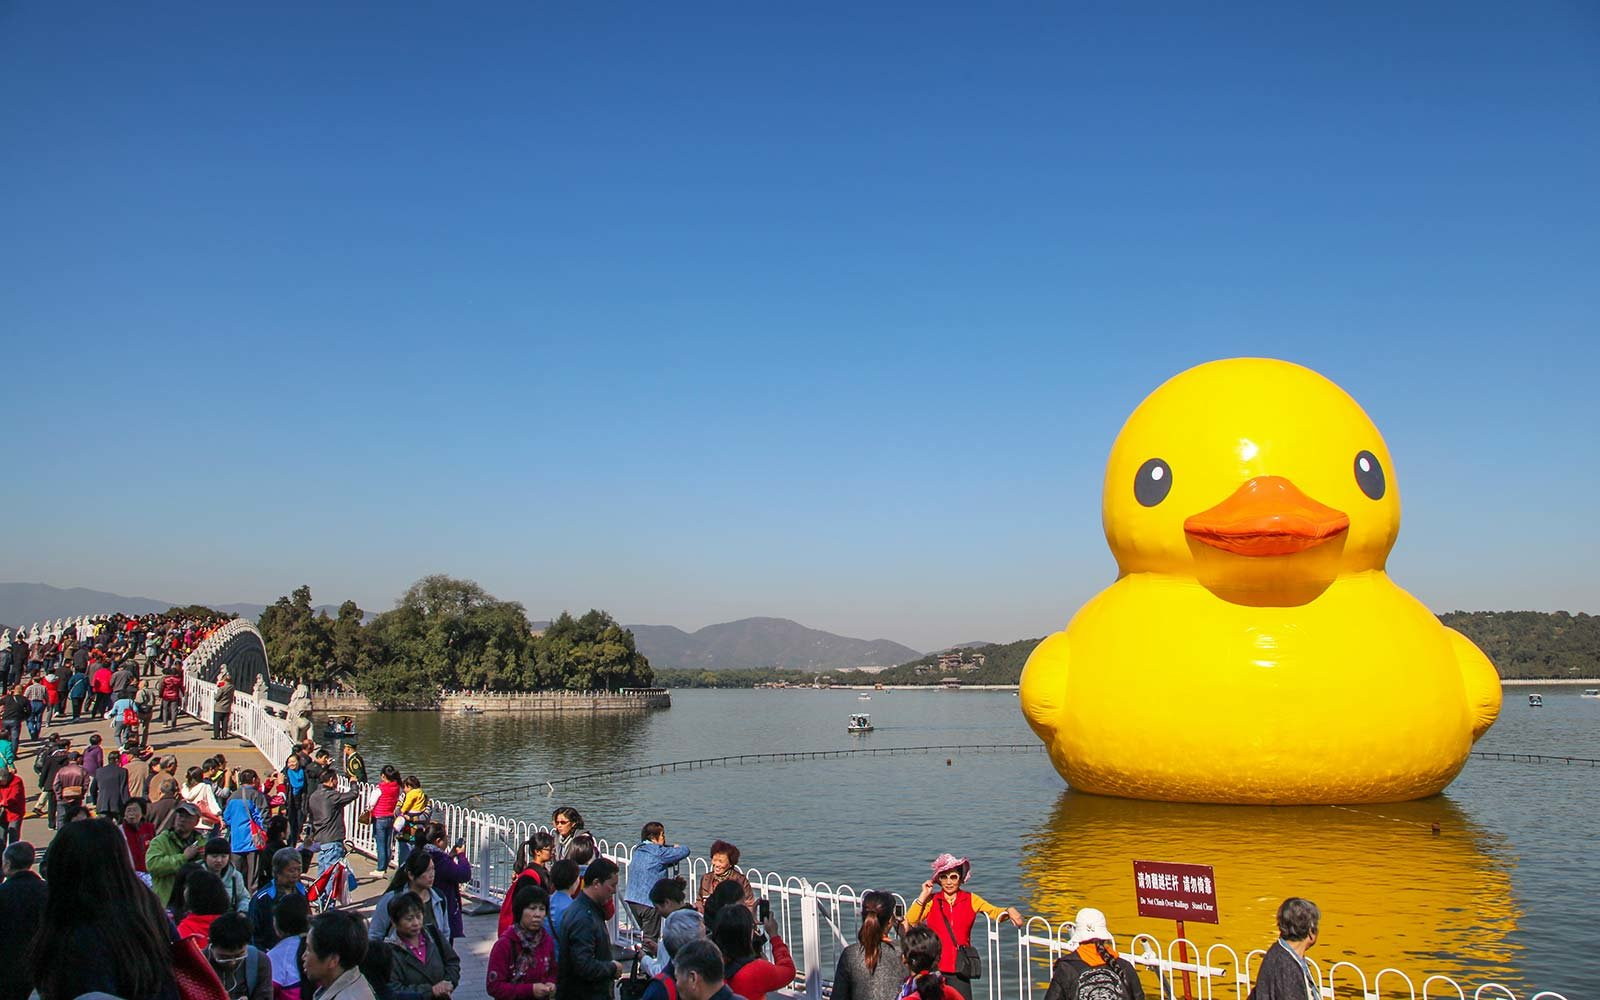 Rubber duck sits in the Summer Palace Kunming Lake in Beijing, China. Artist Florentijn Hofman